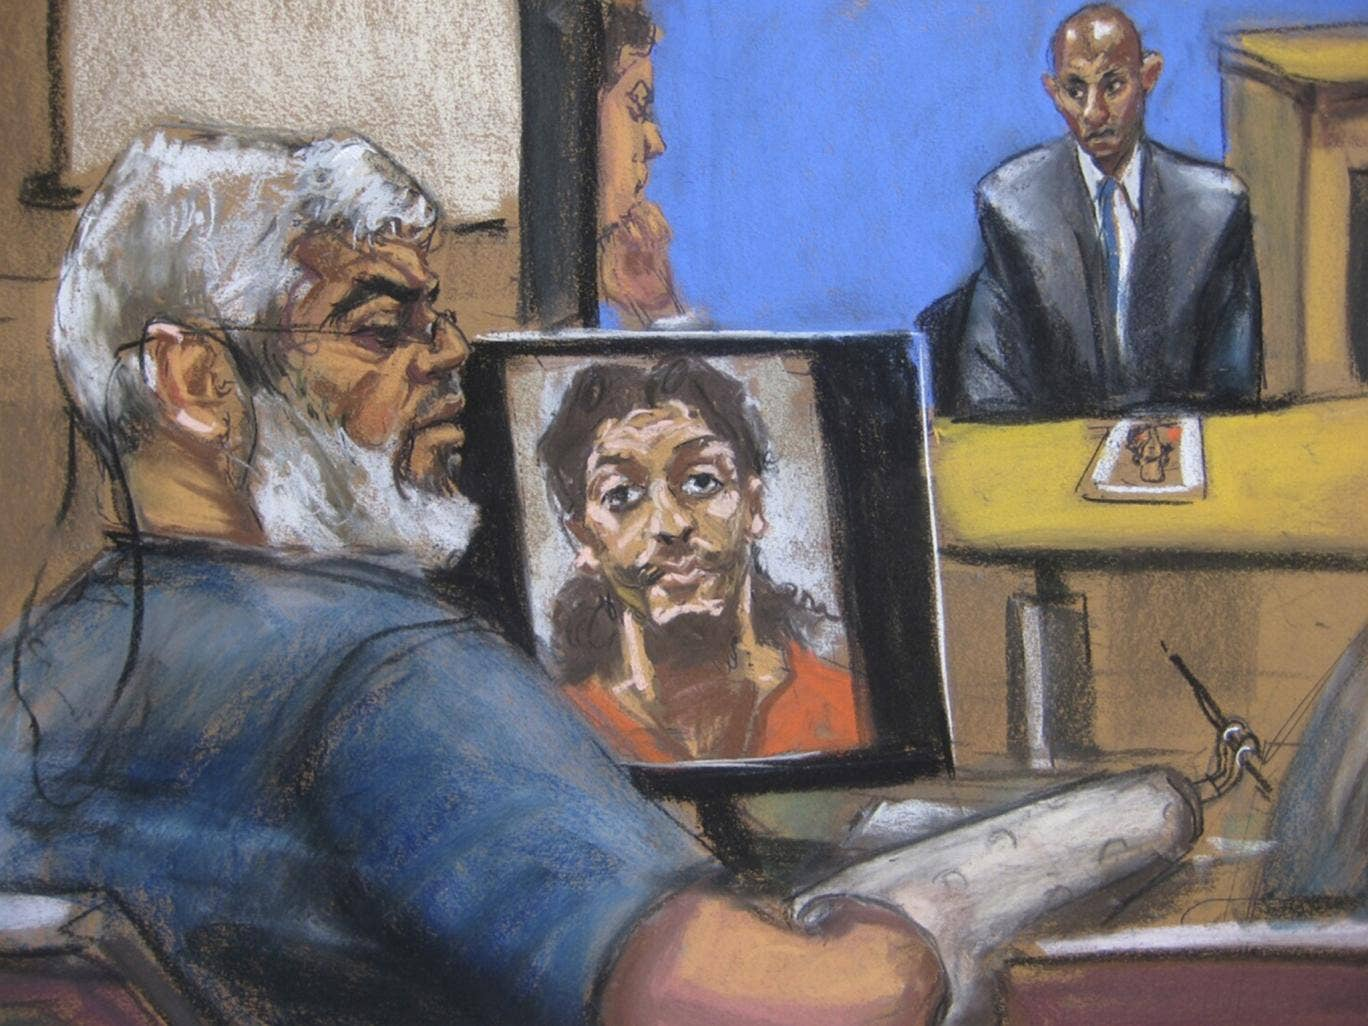 Abu Hamza during his trial in New York